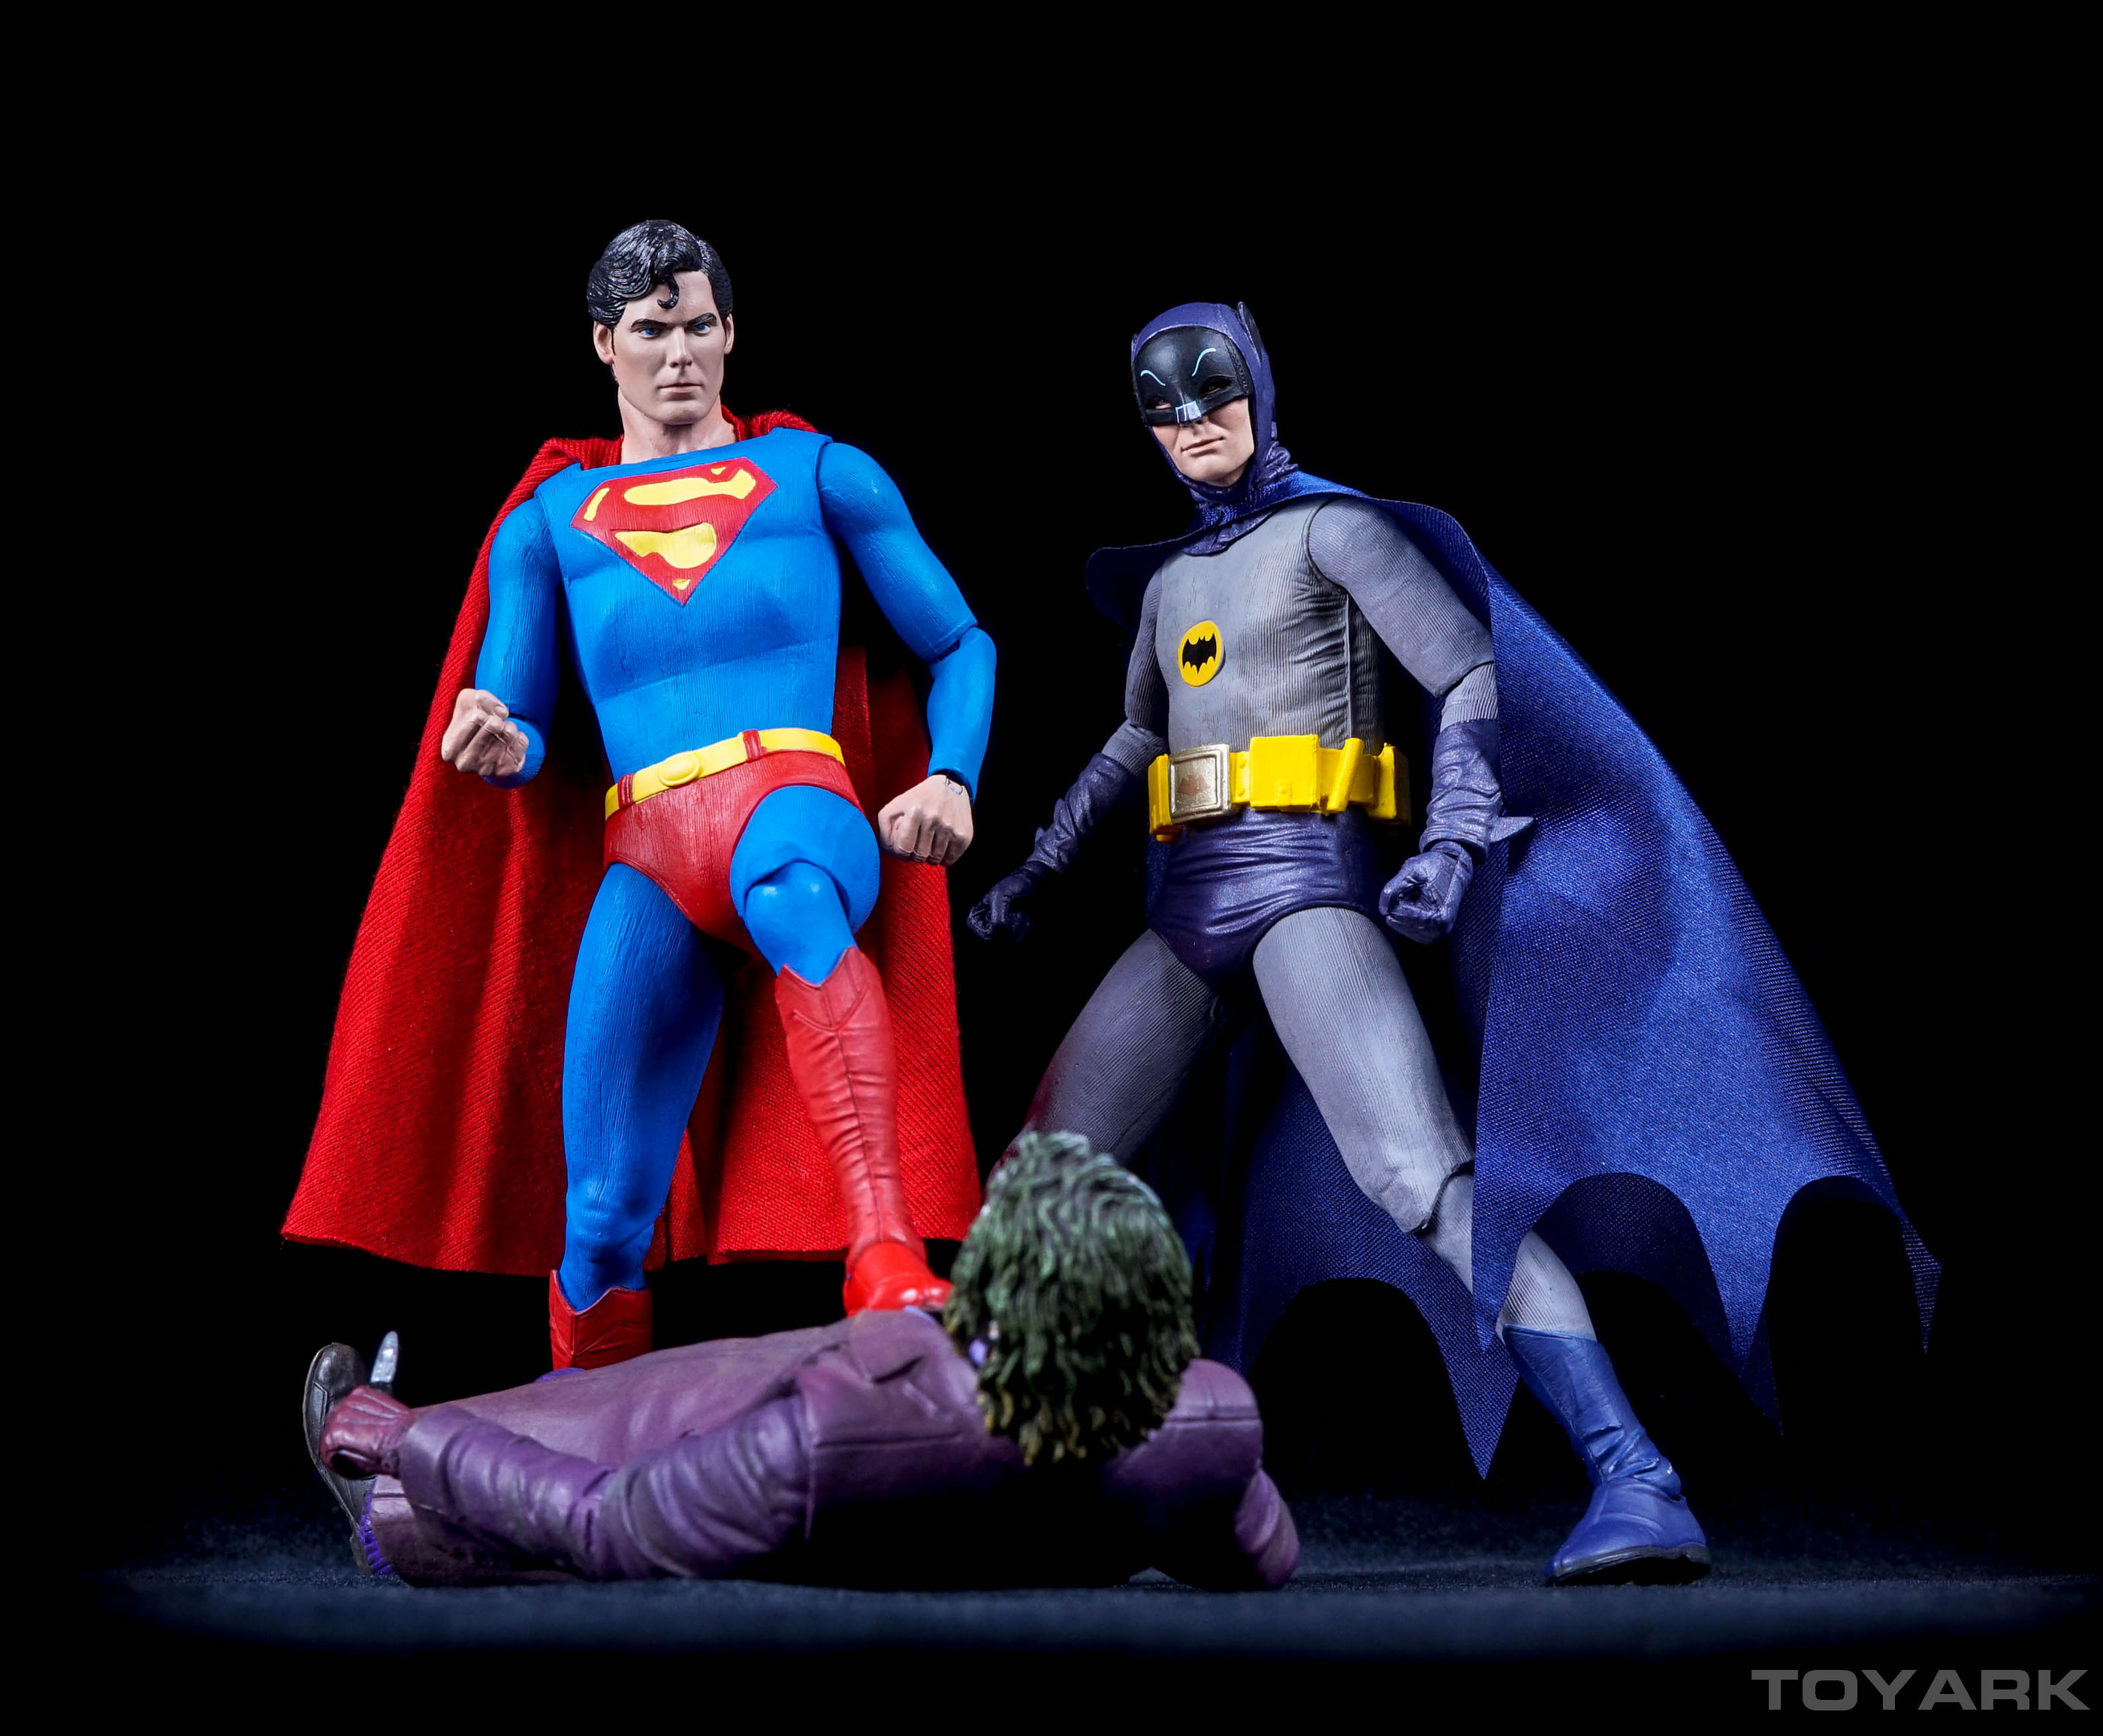 http://news.toyark.com/wp-content/uploads/sites/4/2015/11/NECA-7-Inch-Superman-057.jpg